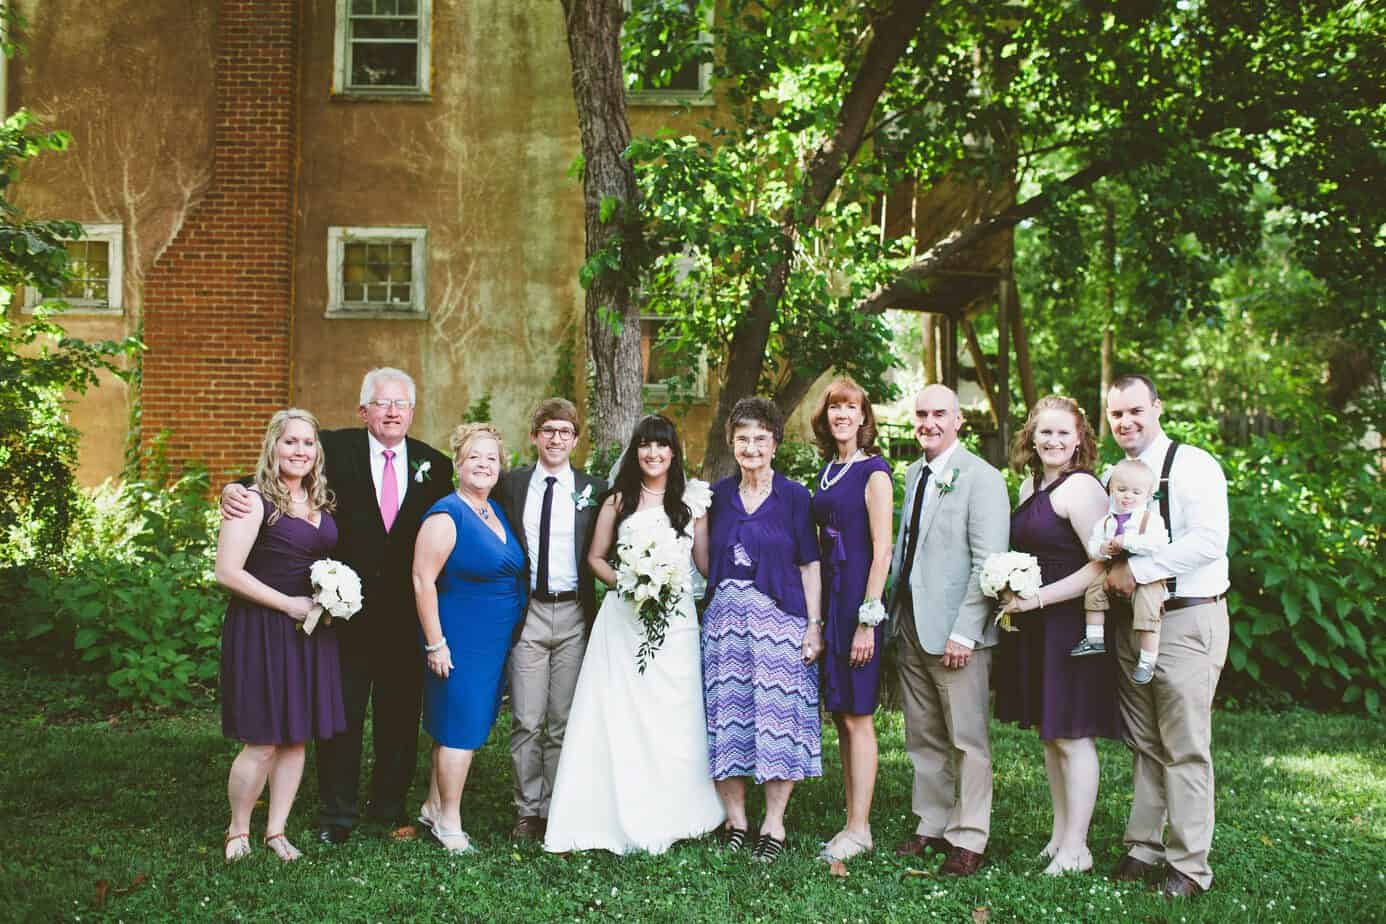 family wedding picture